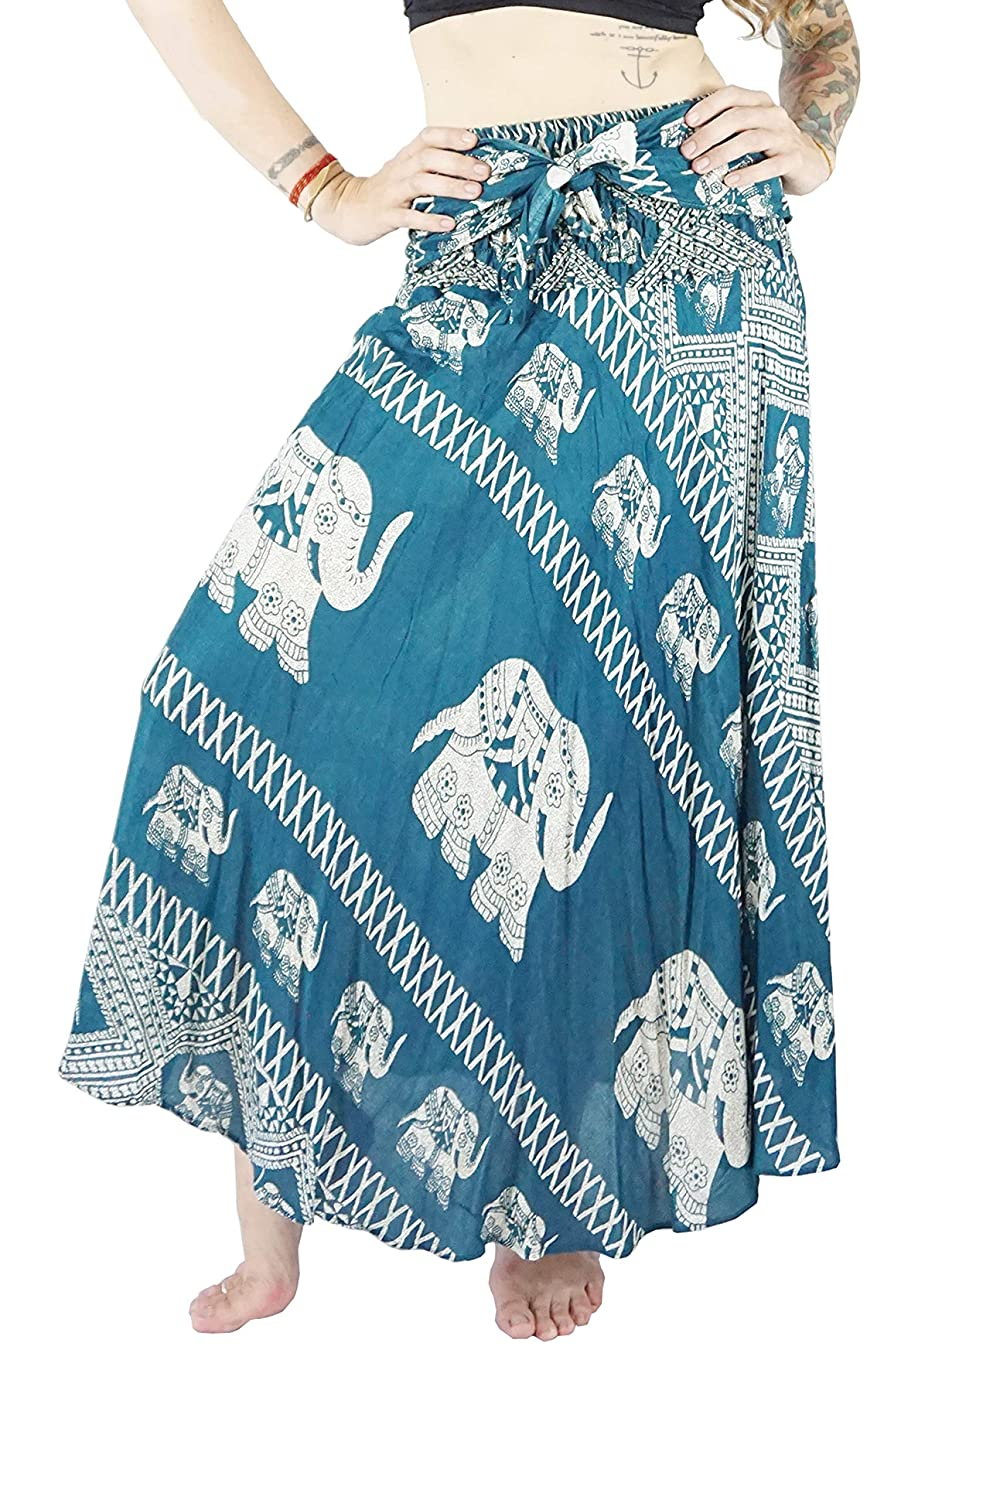 5af044a5a59 Cato Fashions Plus Size Skirts - Gomes Weine AG